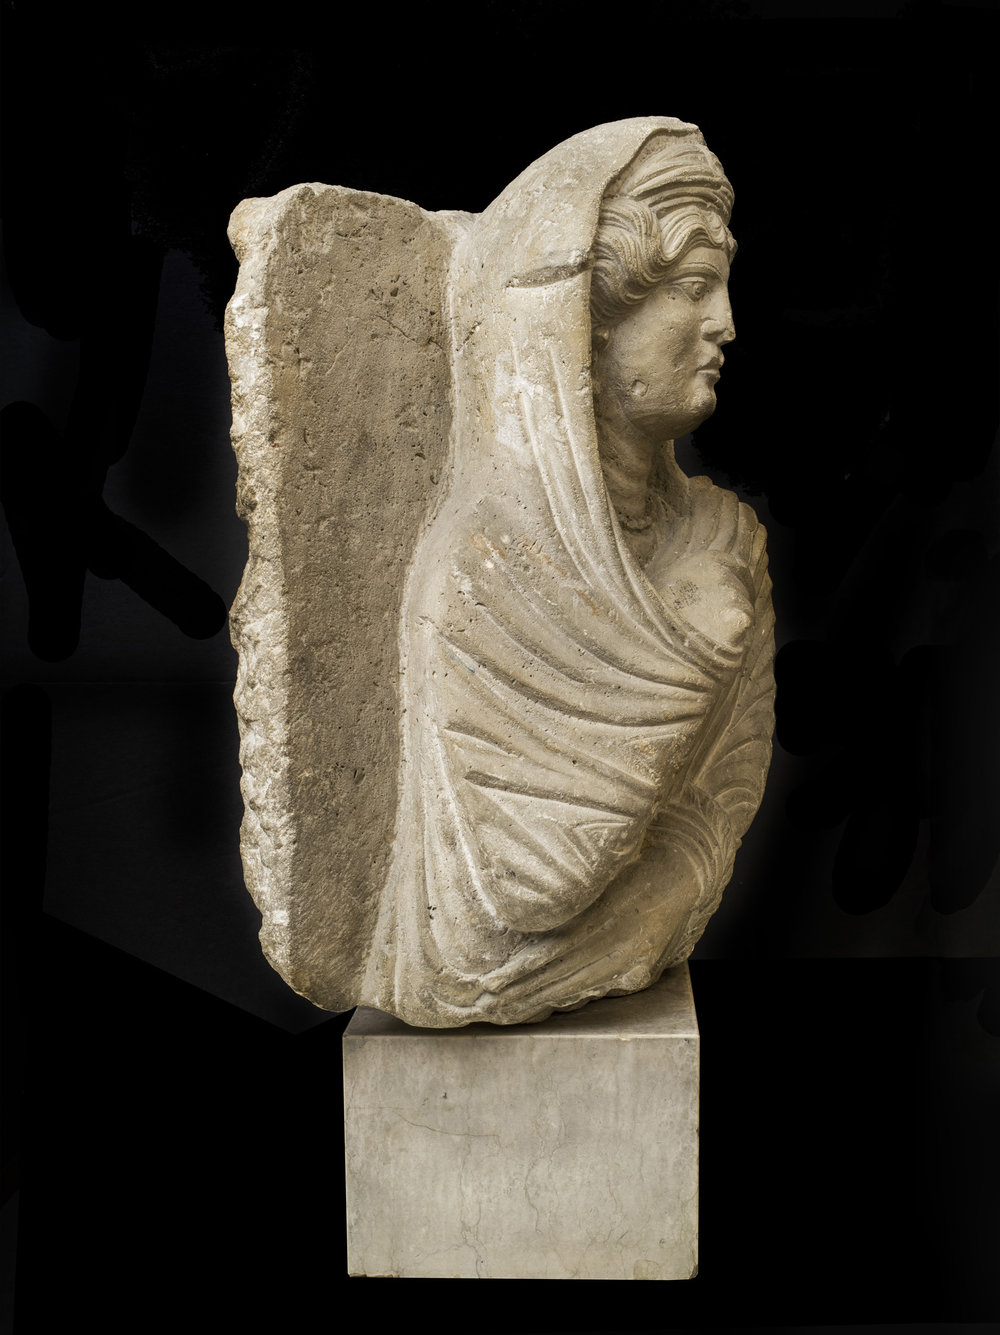 A Palmyrene Stele of a Woman - View from the Left